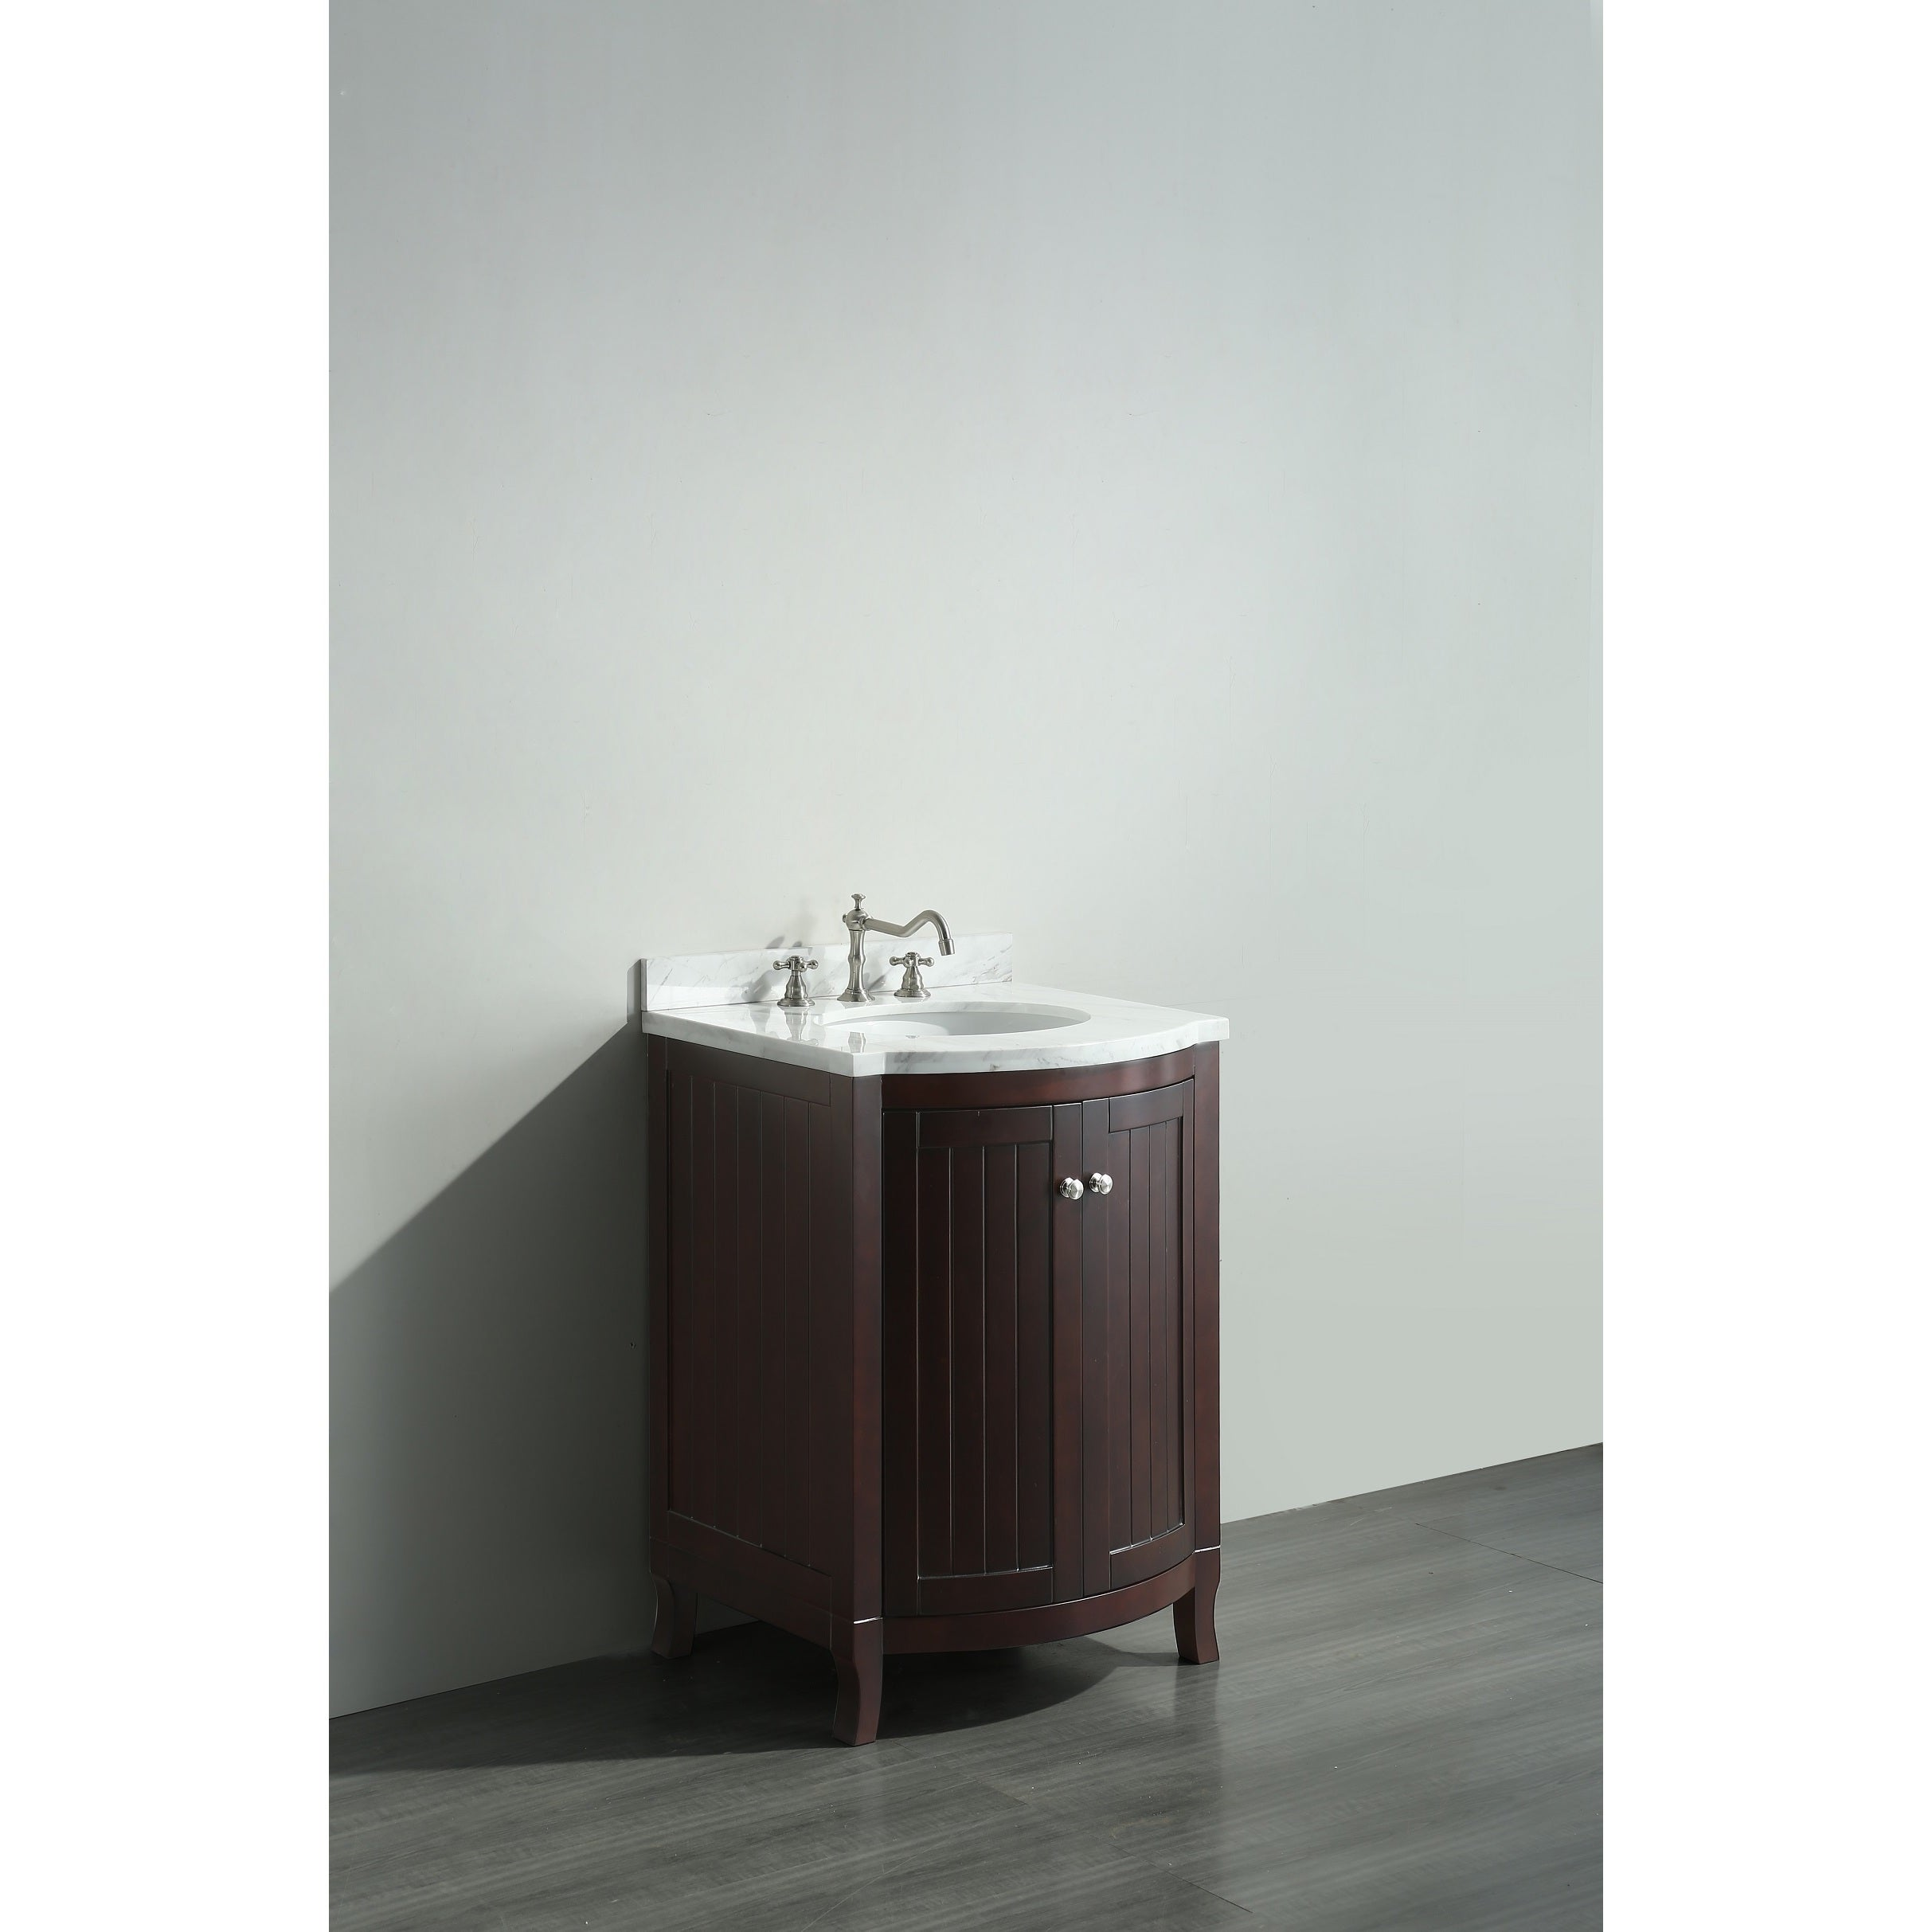 Eviva Odessa Zinx Dark Teak 24 Inch Bathroom Vanity With White Carrera Marble Counter Top And Porcelain Sink Free Shipping Today